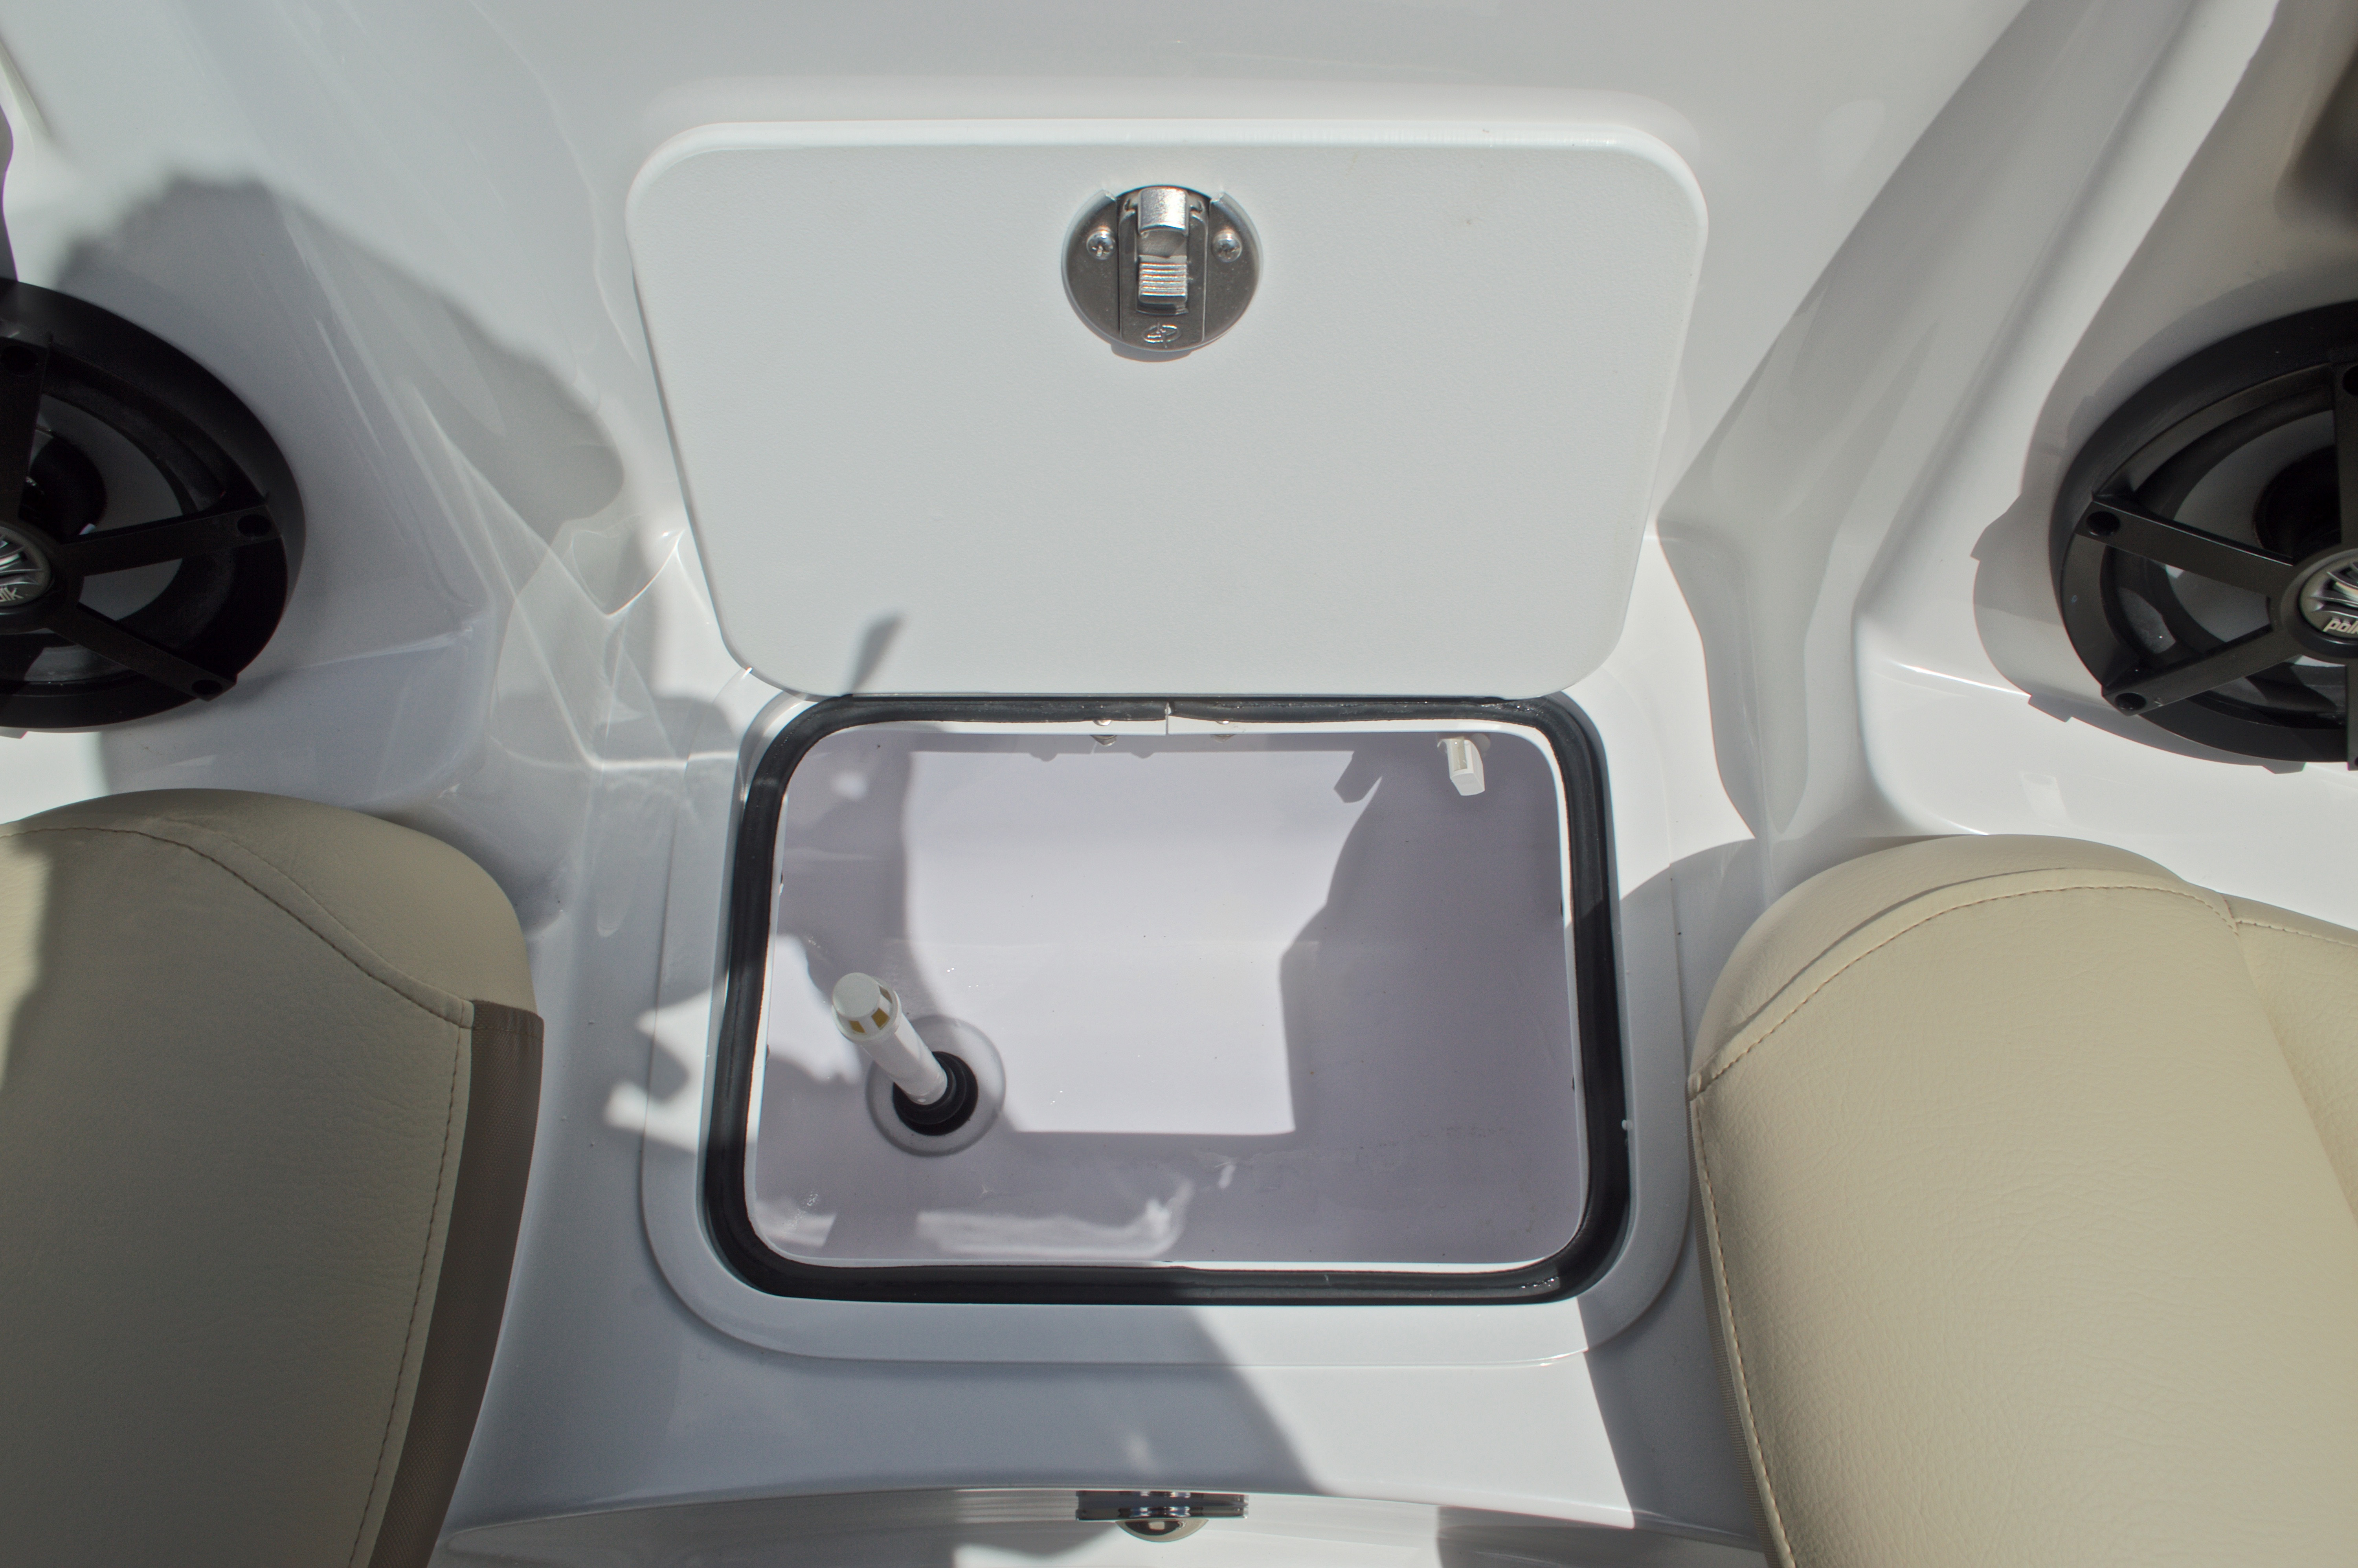 Thumbnail 52 for New 2017 Hurricane SunDeck SD 2400 OB boat for sale in West Palm Beach, FL